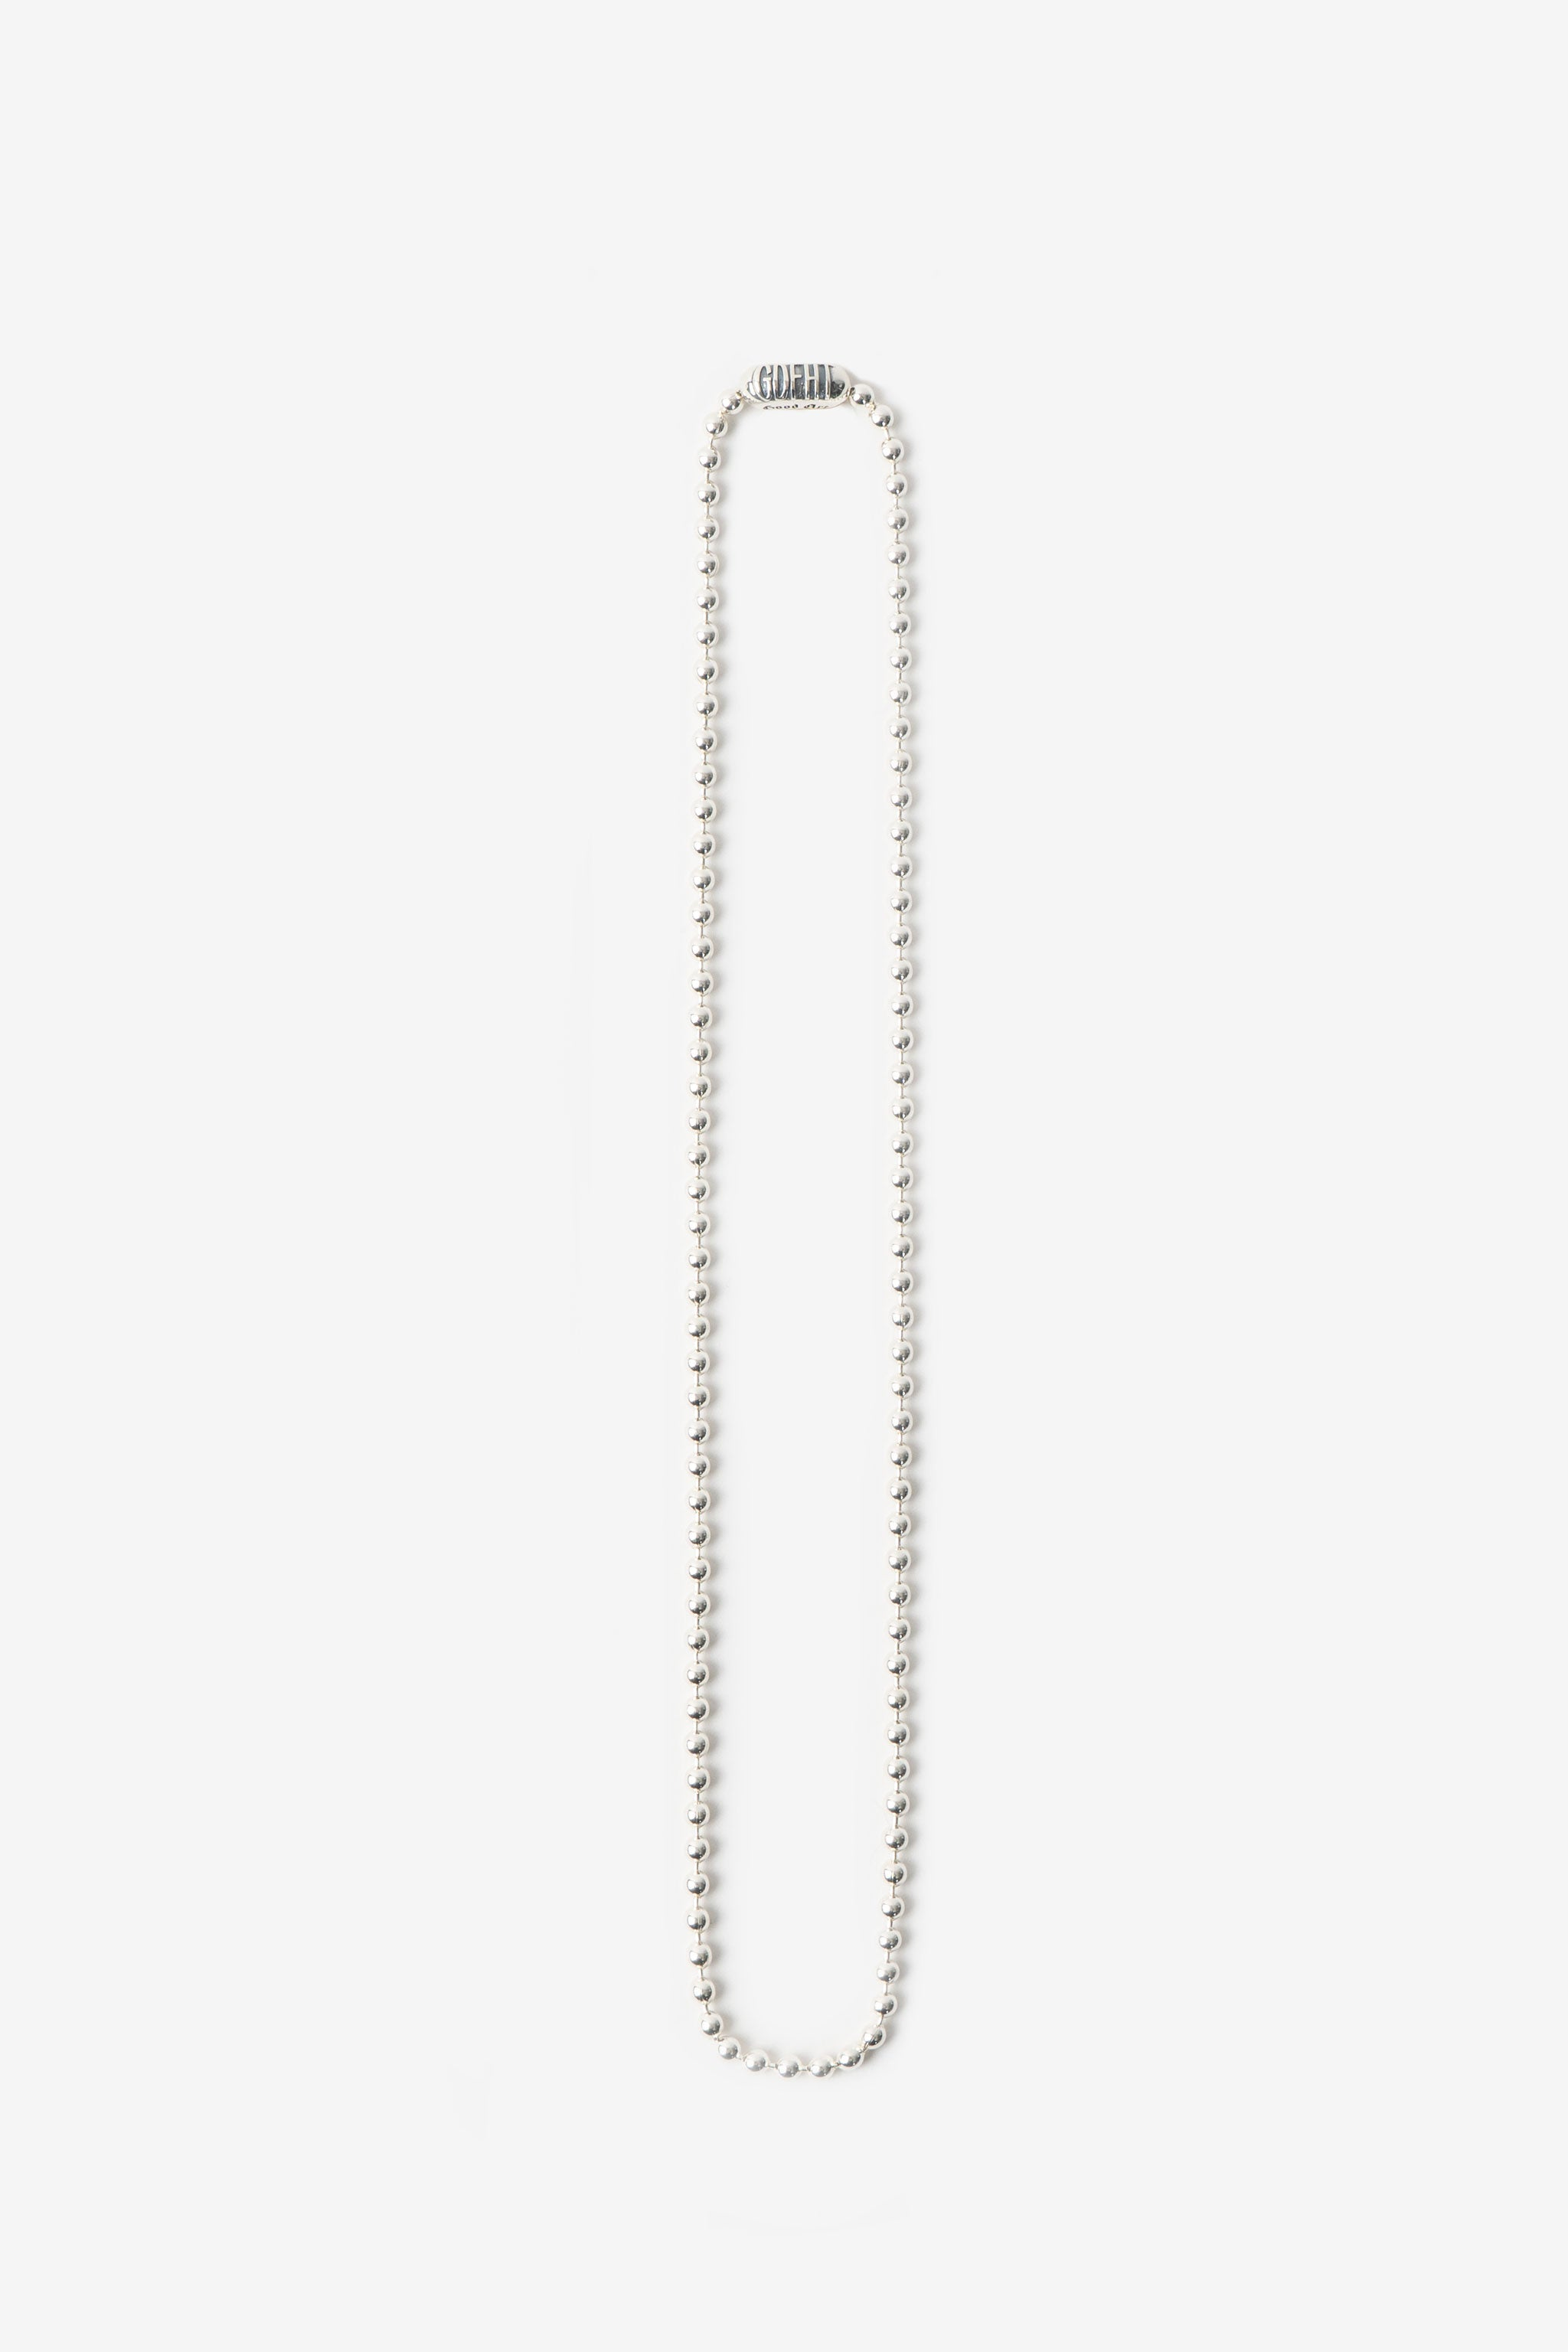 Good Art Hlywd for Goodfight Ball Chain Necklace - 24""